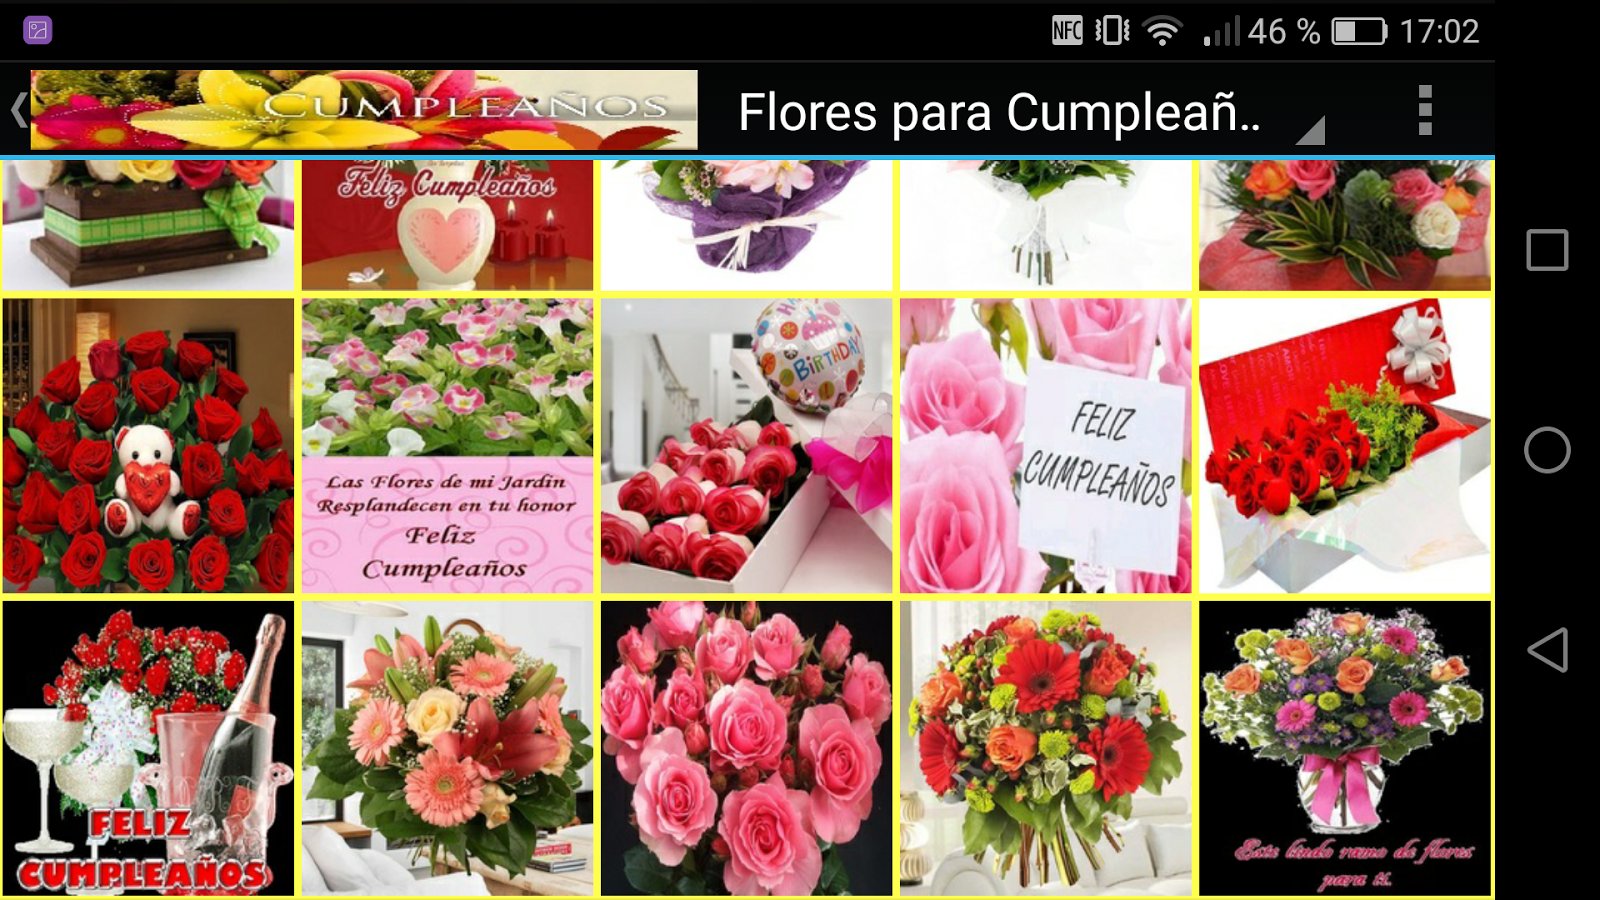 Flores para cumplea os android apps on google play - Flor para cumpleanos ...